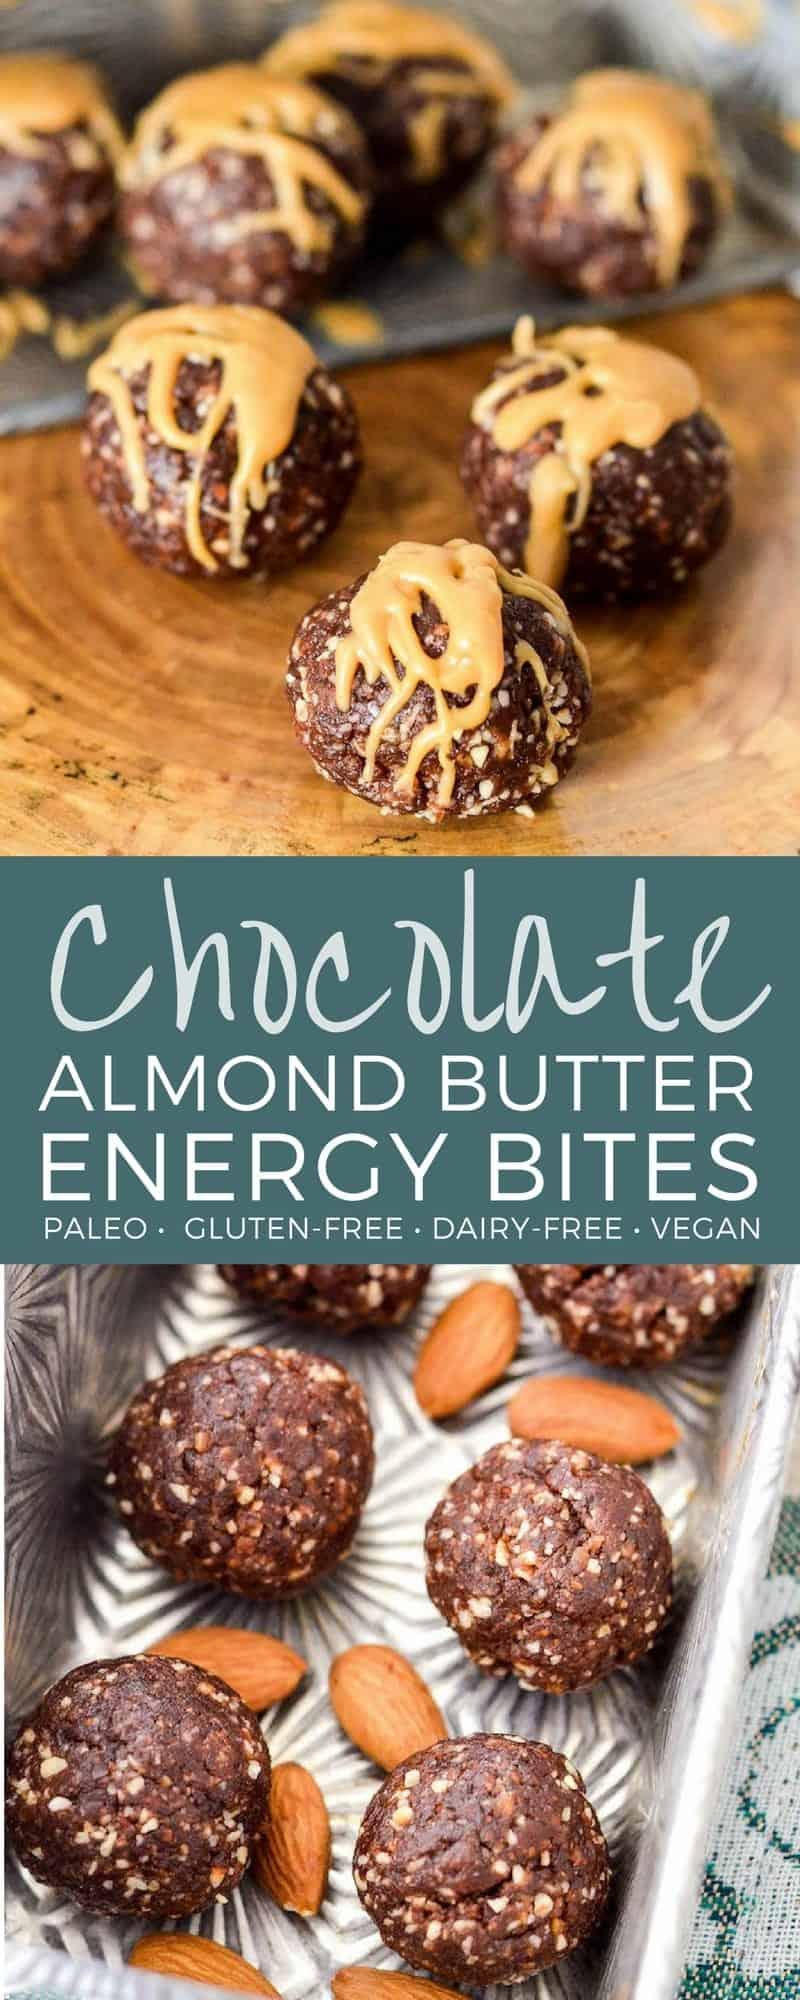 Chocolate Almond Butter Energy Balls are made with 7 ingredients and come together in 10 minutes! They are the perfect easy & healthy snack recipe! Paleo, gluten-free, dairy-free, date-sweetened & vegan! #paleo #vegan #glutenfree #dairyfree #recipe #snack #energyballs #energybites #chocolate #almondbutter